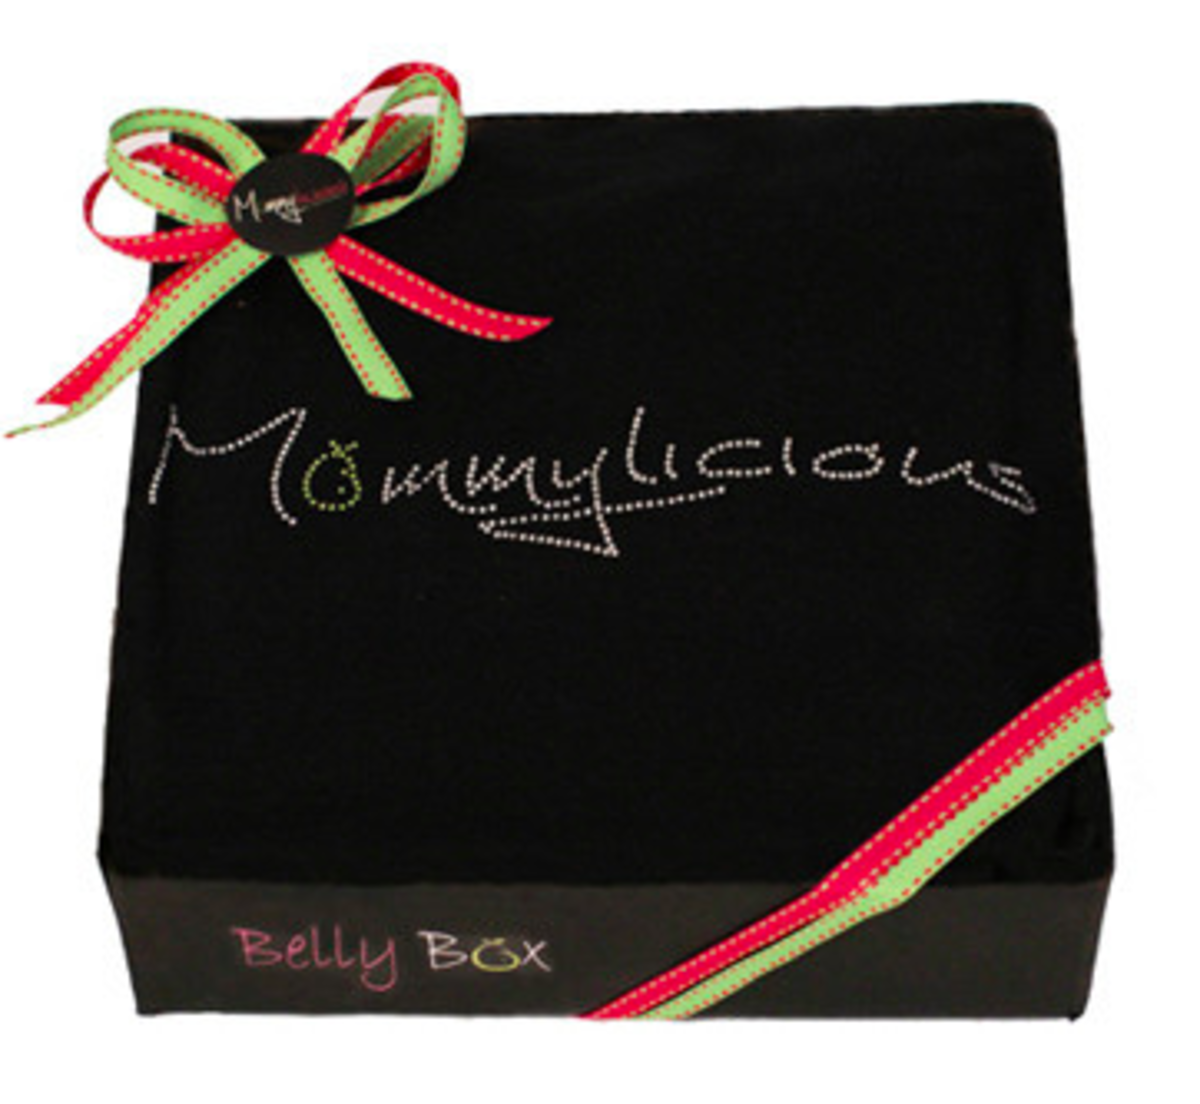 Belly Box by Mommylicious